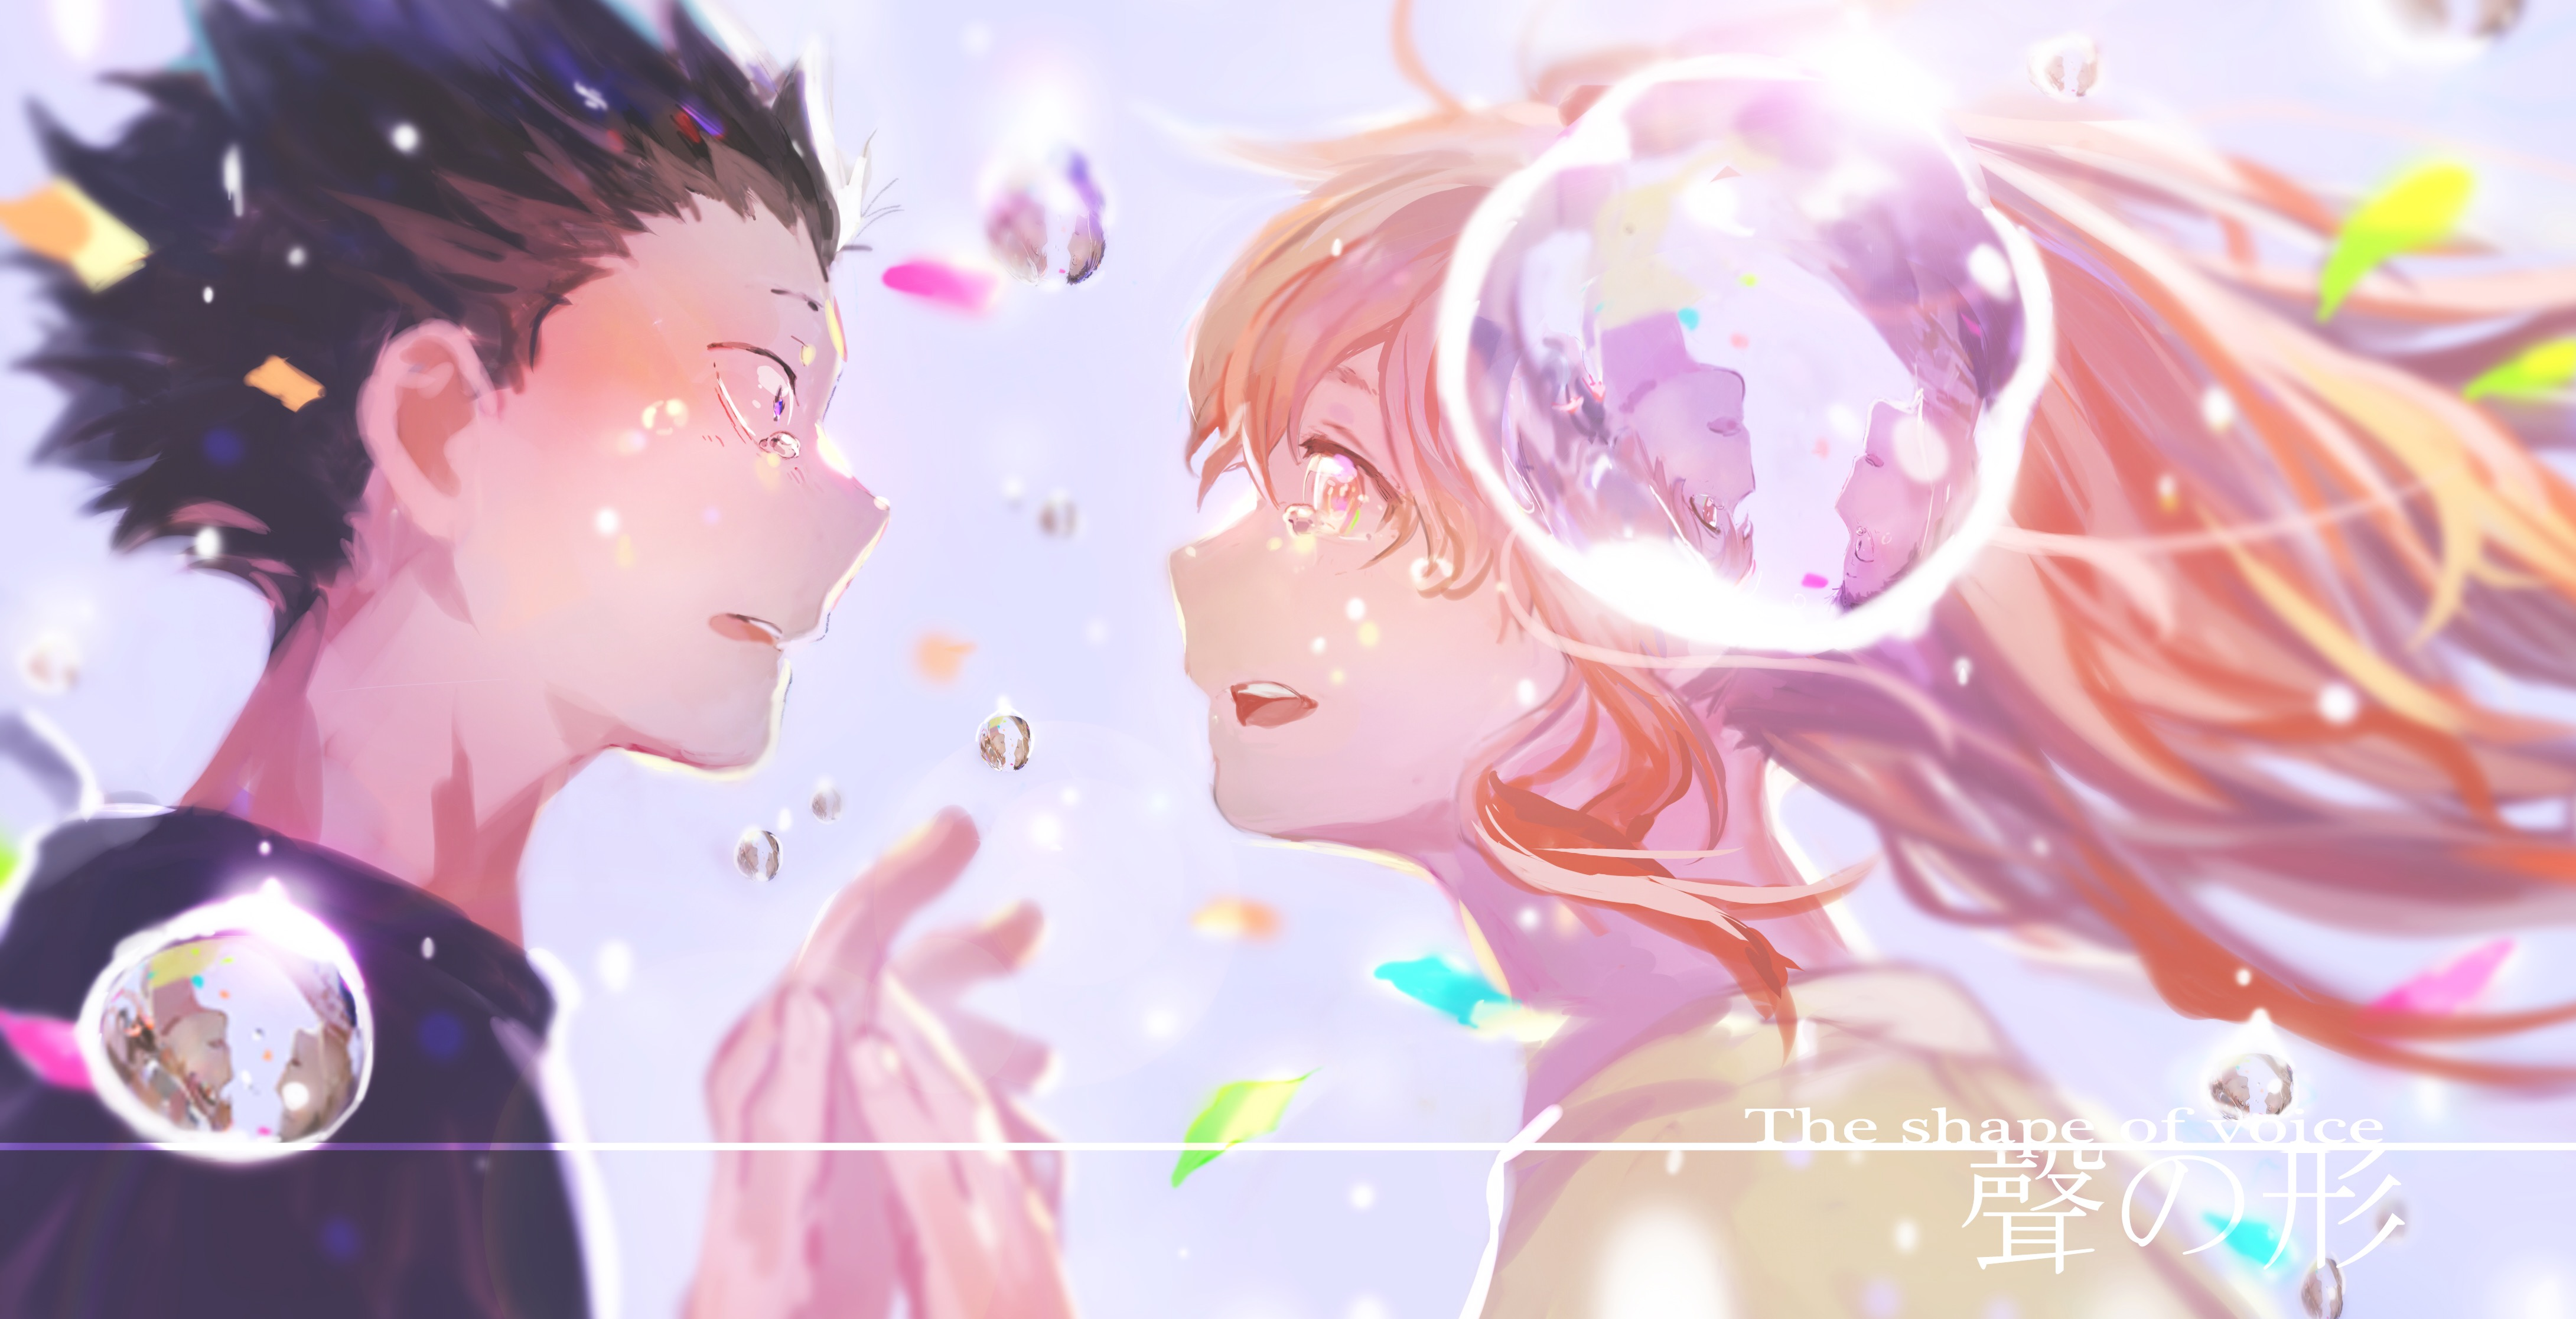 Koe no Katachi - Zerochan Anime Image Board